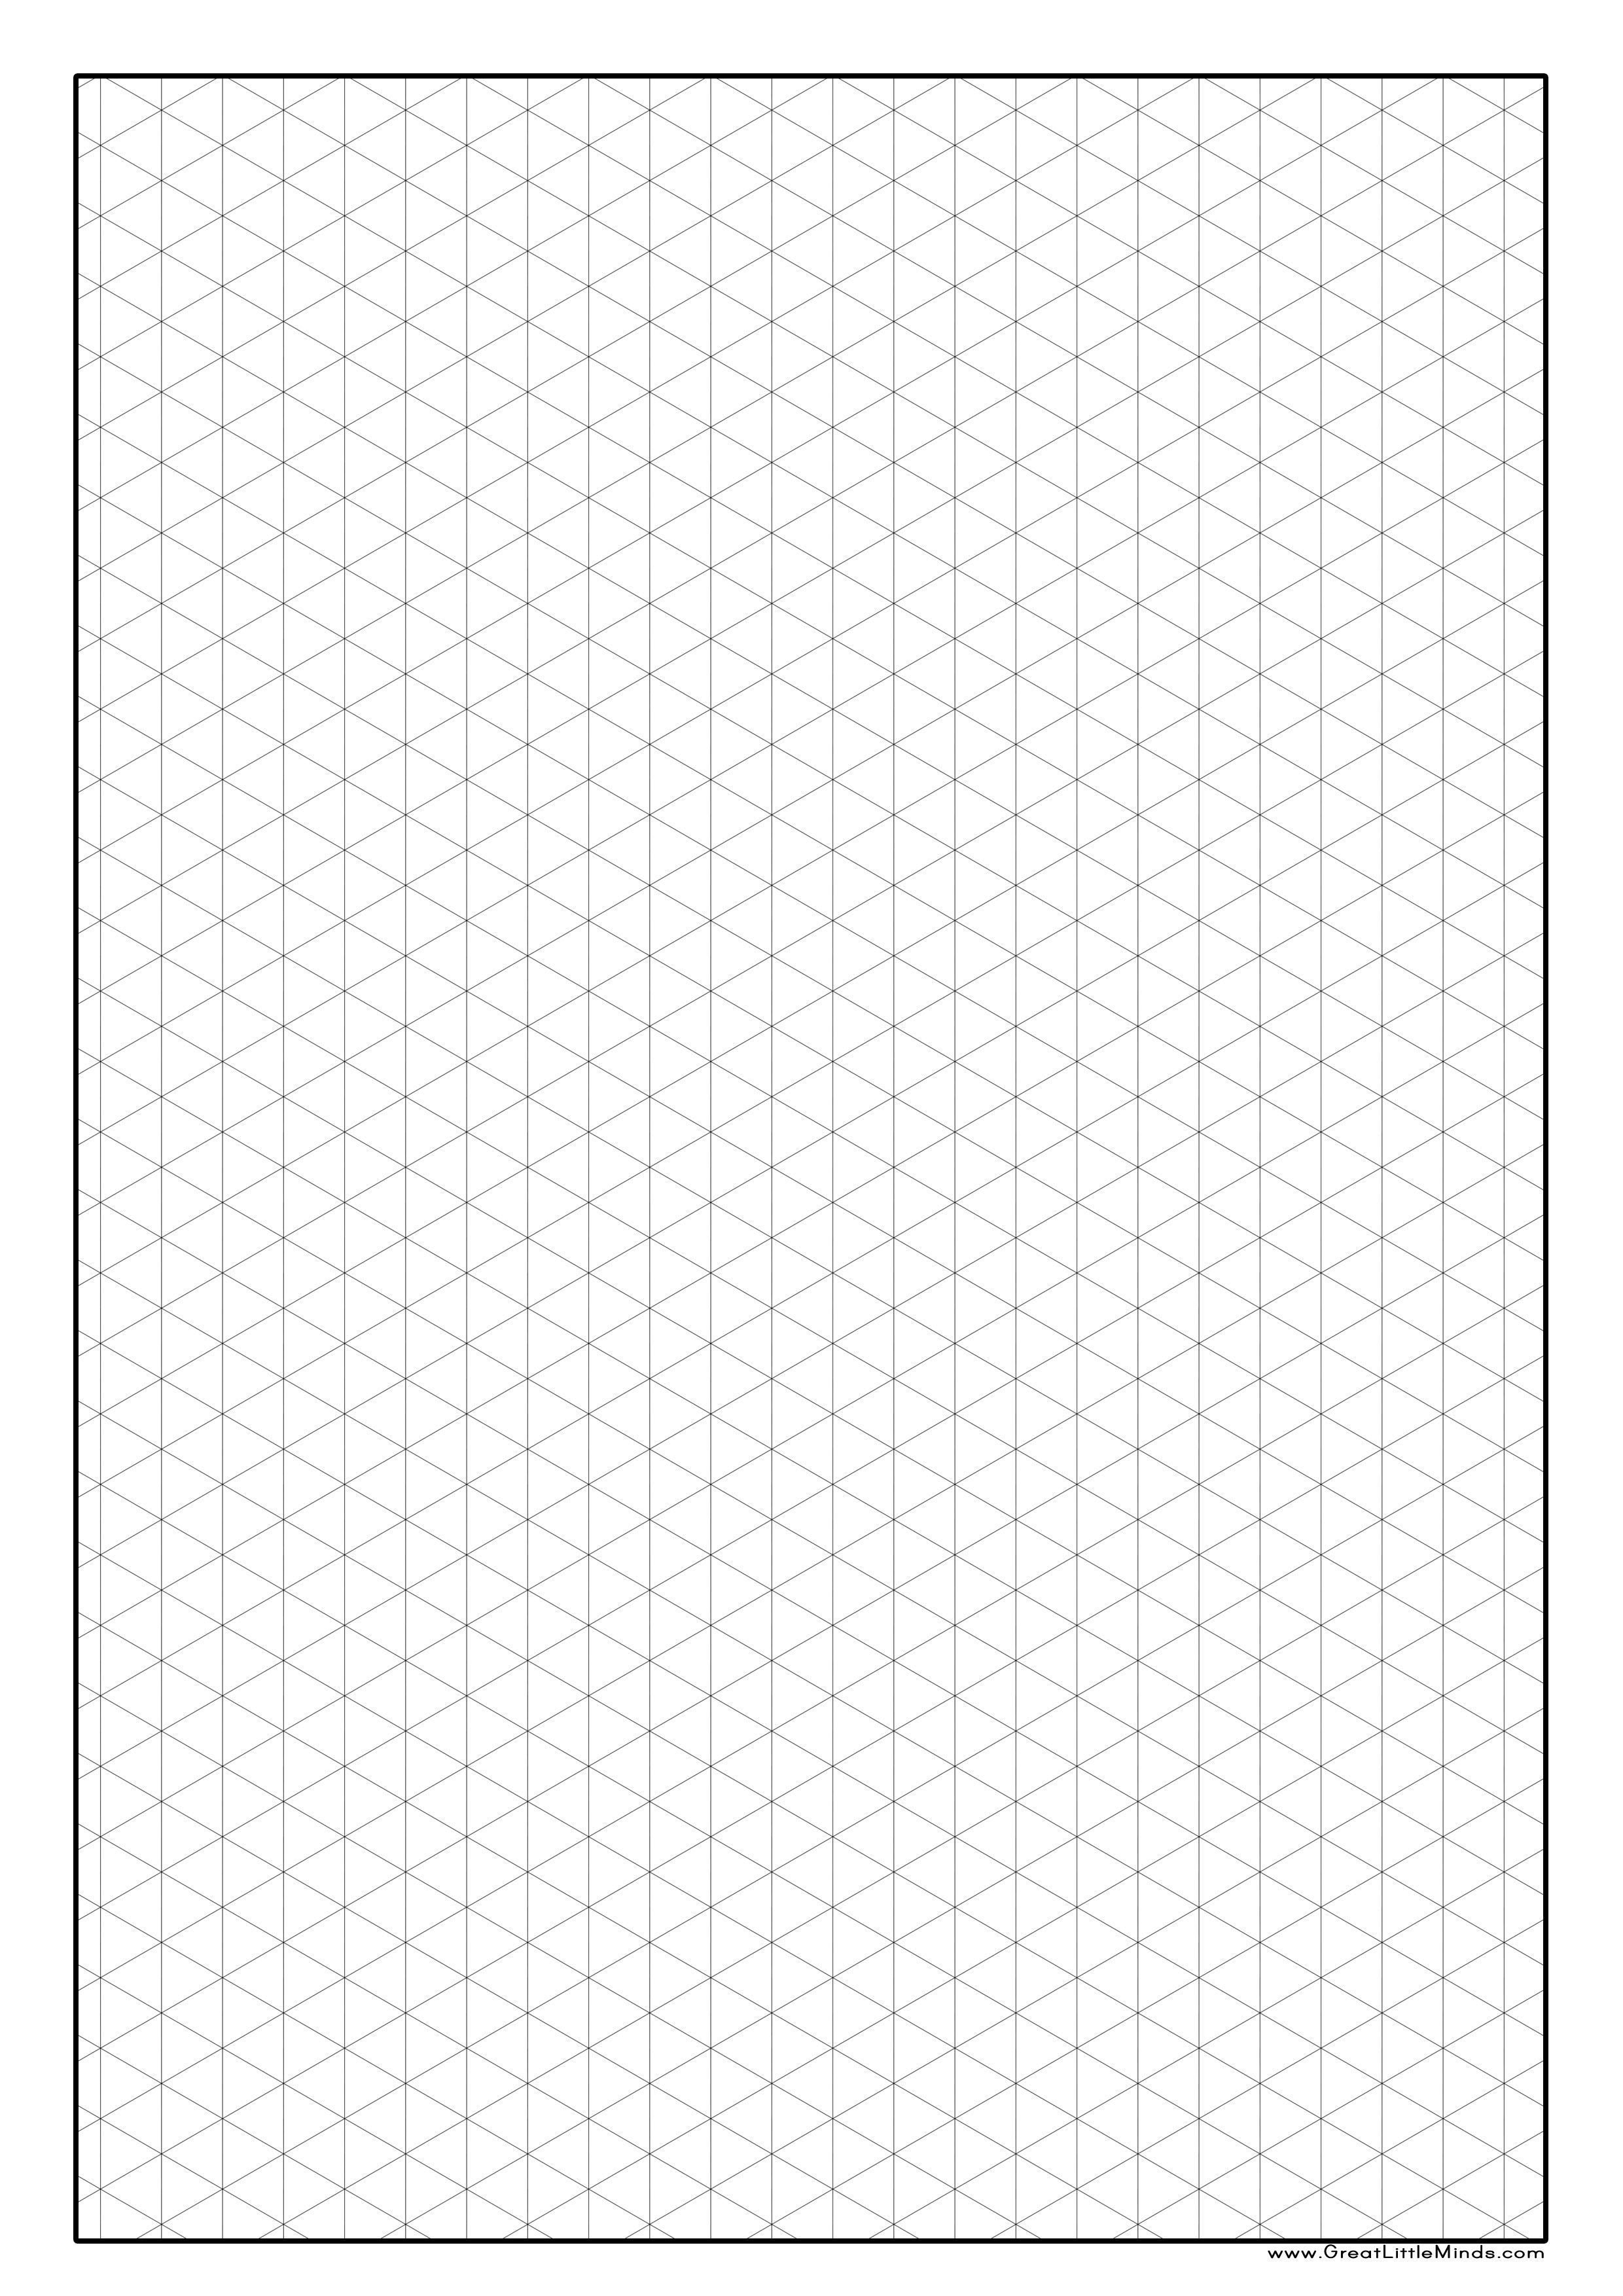 Printable Isometric Graph Paper  ZoeyS Room    Graph